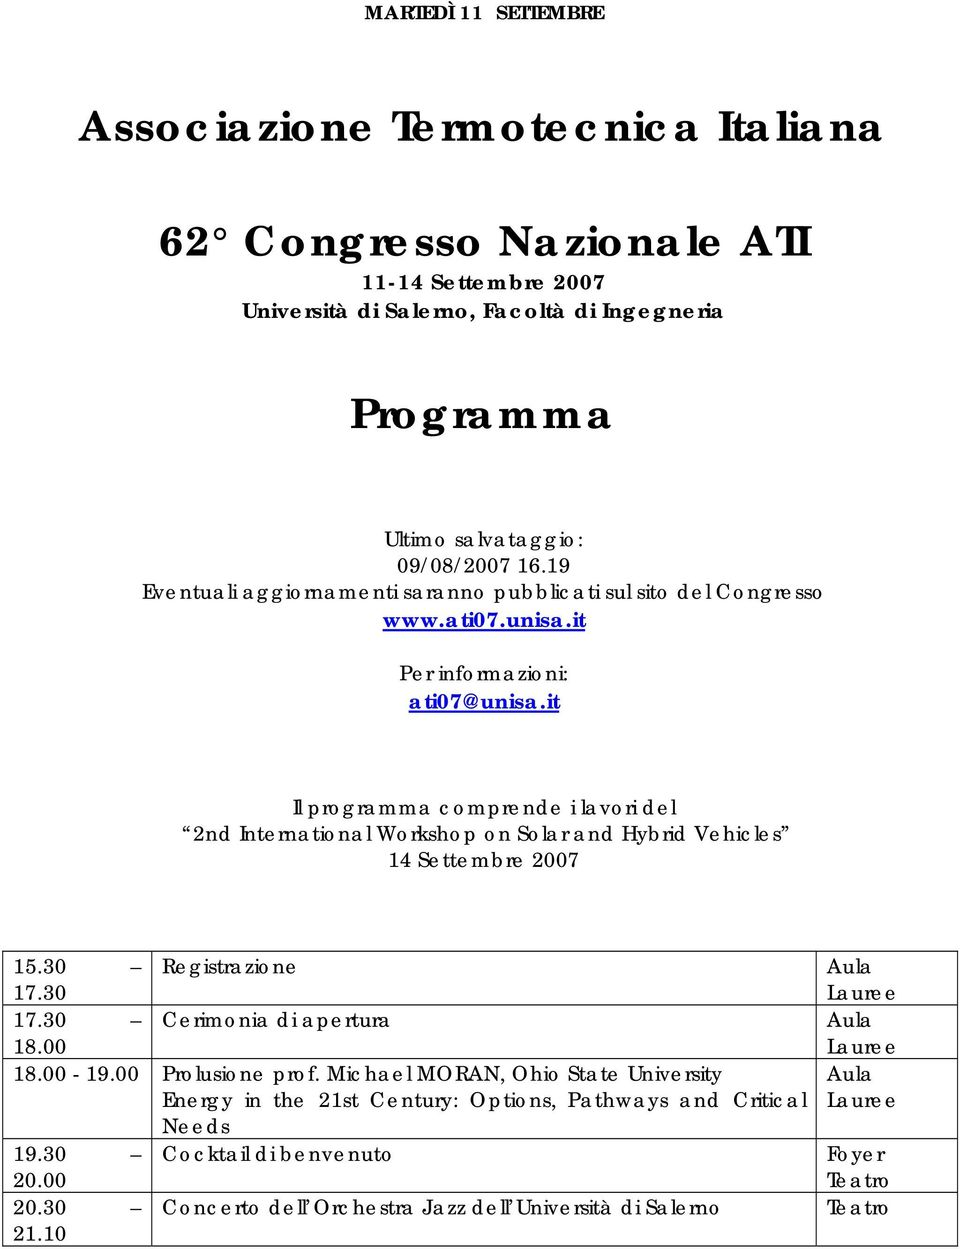 it Il programma comprende i lavori del 2nd International Workshop on Solar and Hybrid Vehicles 14 Settembre 2007 15.30 Registrazione 17.30 17.30 Cerimonia di apertura 18.00 18.00-19.